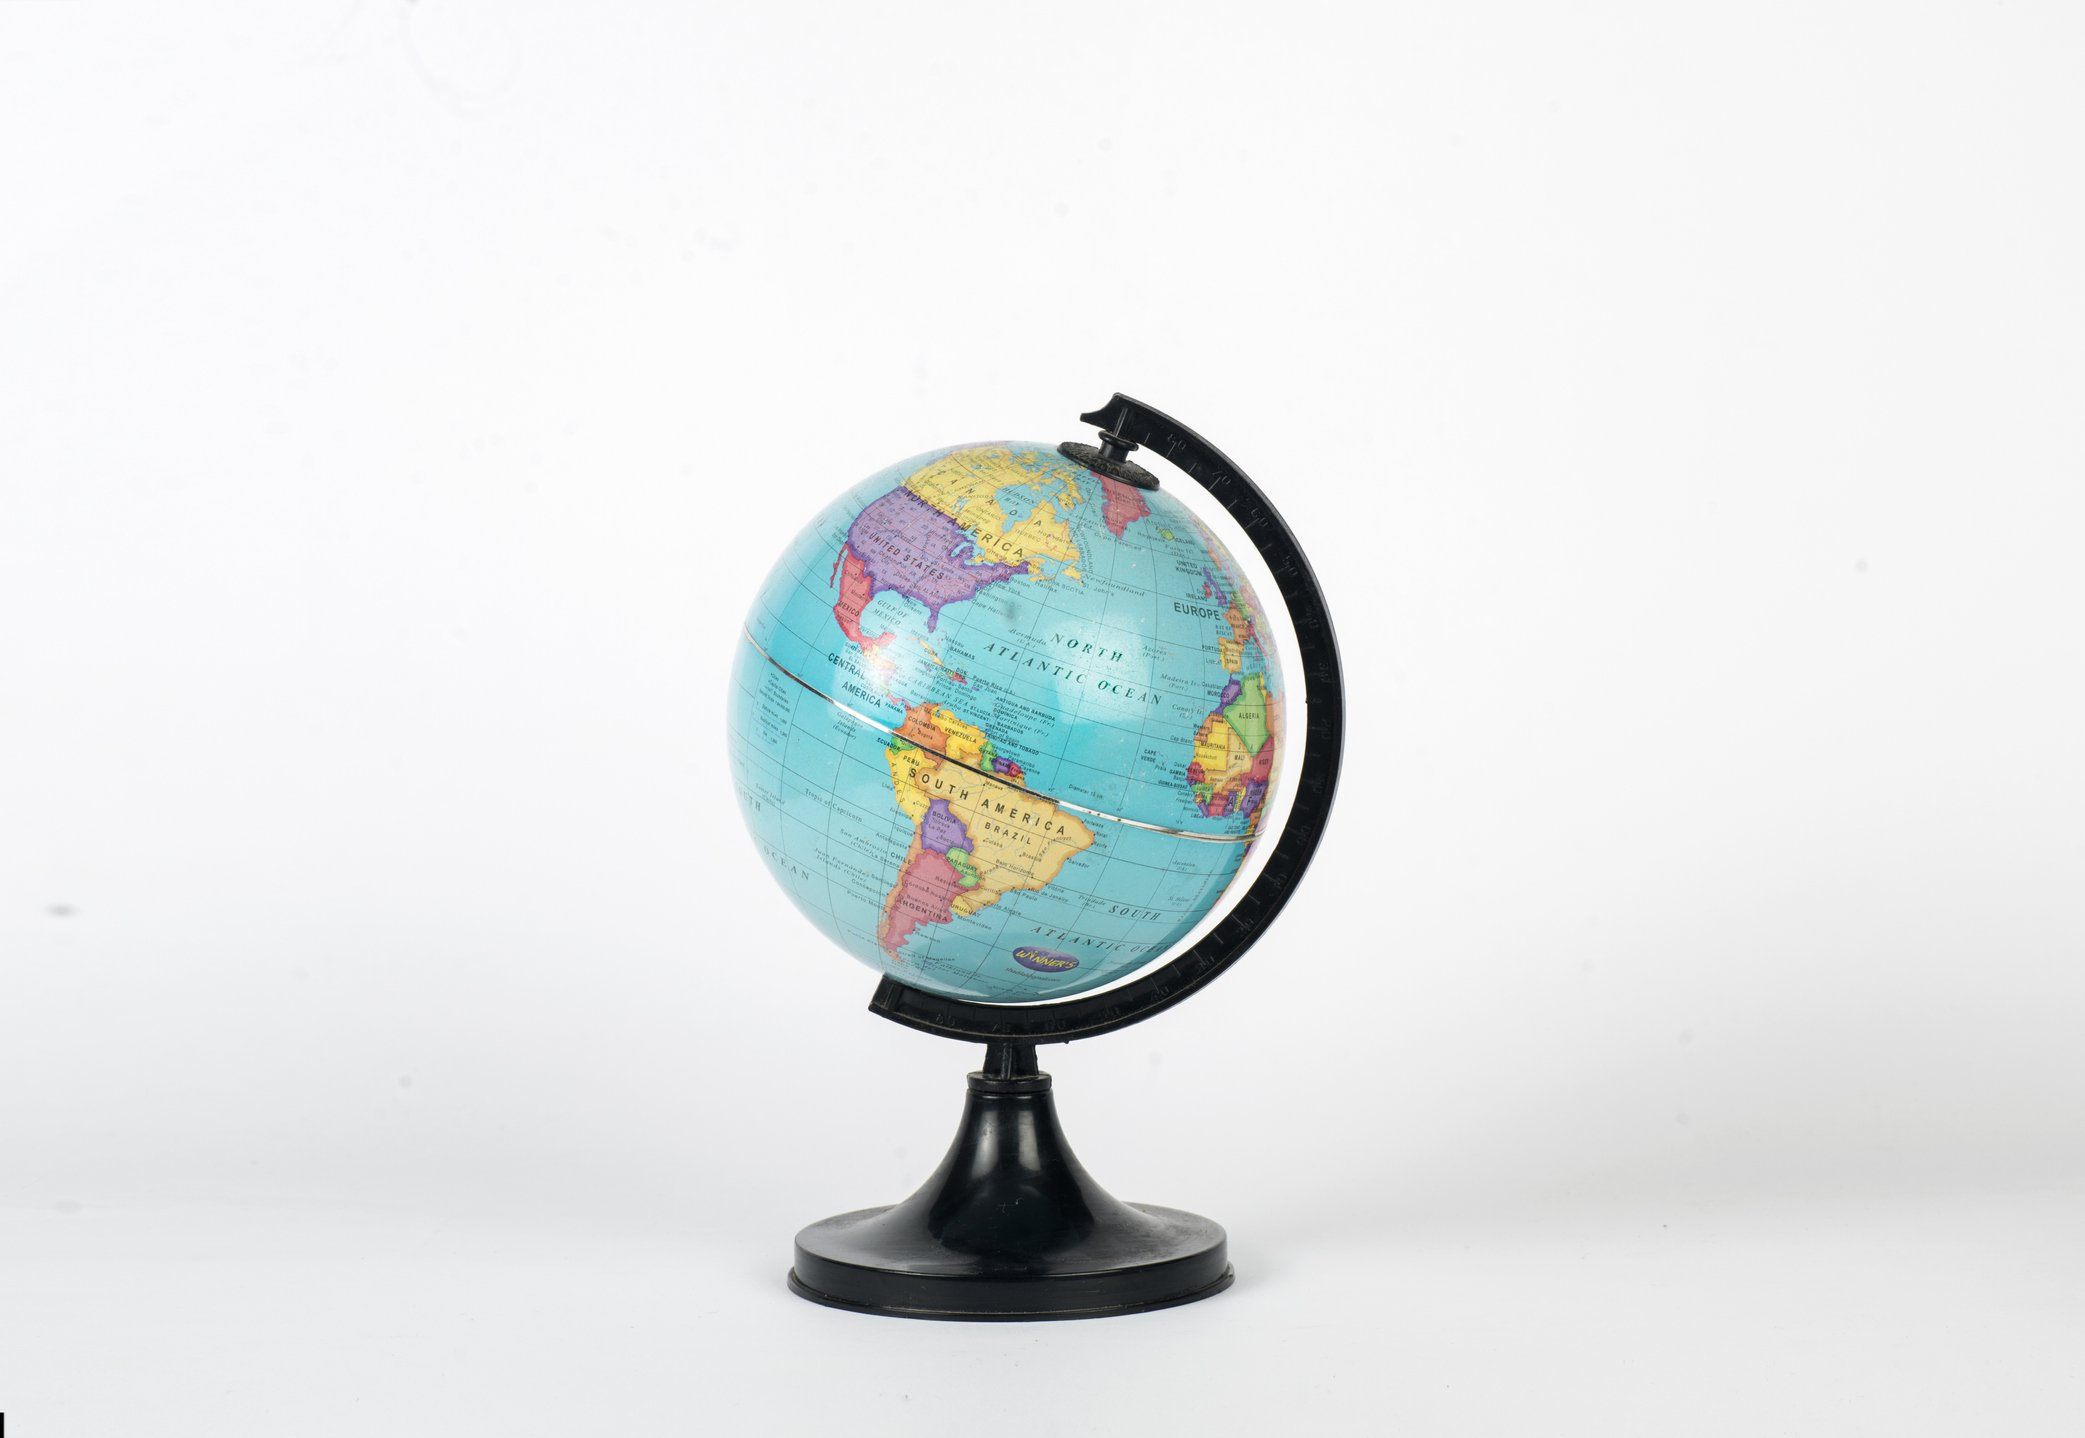 Globe showing North and South America including USA   Photo: Getty Images